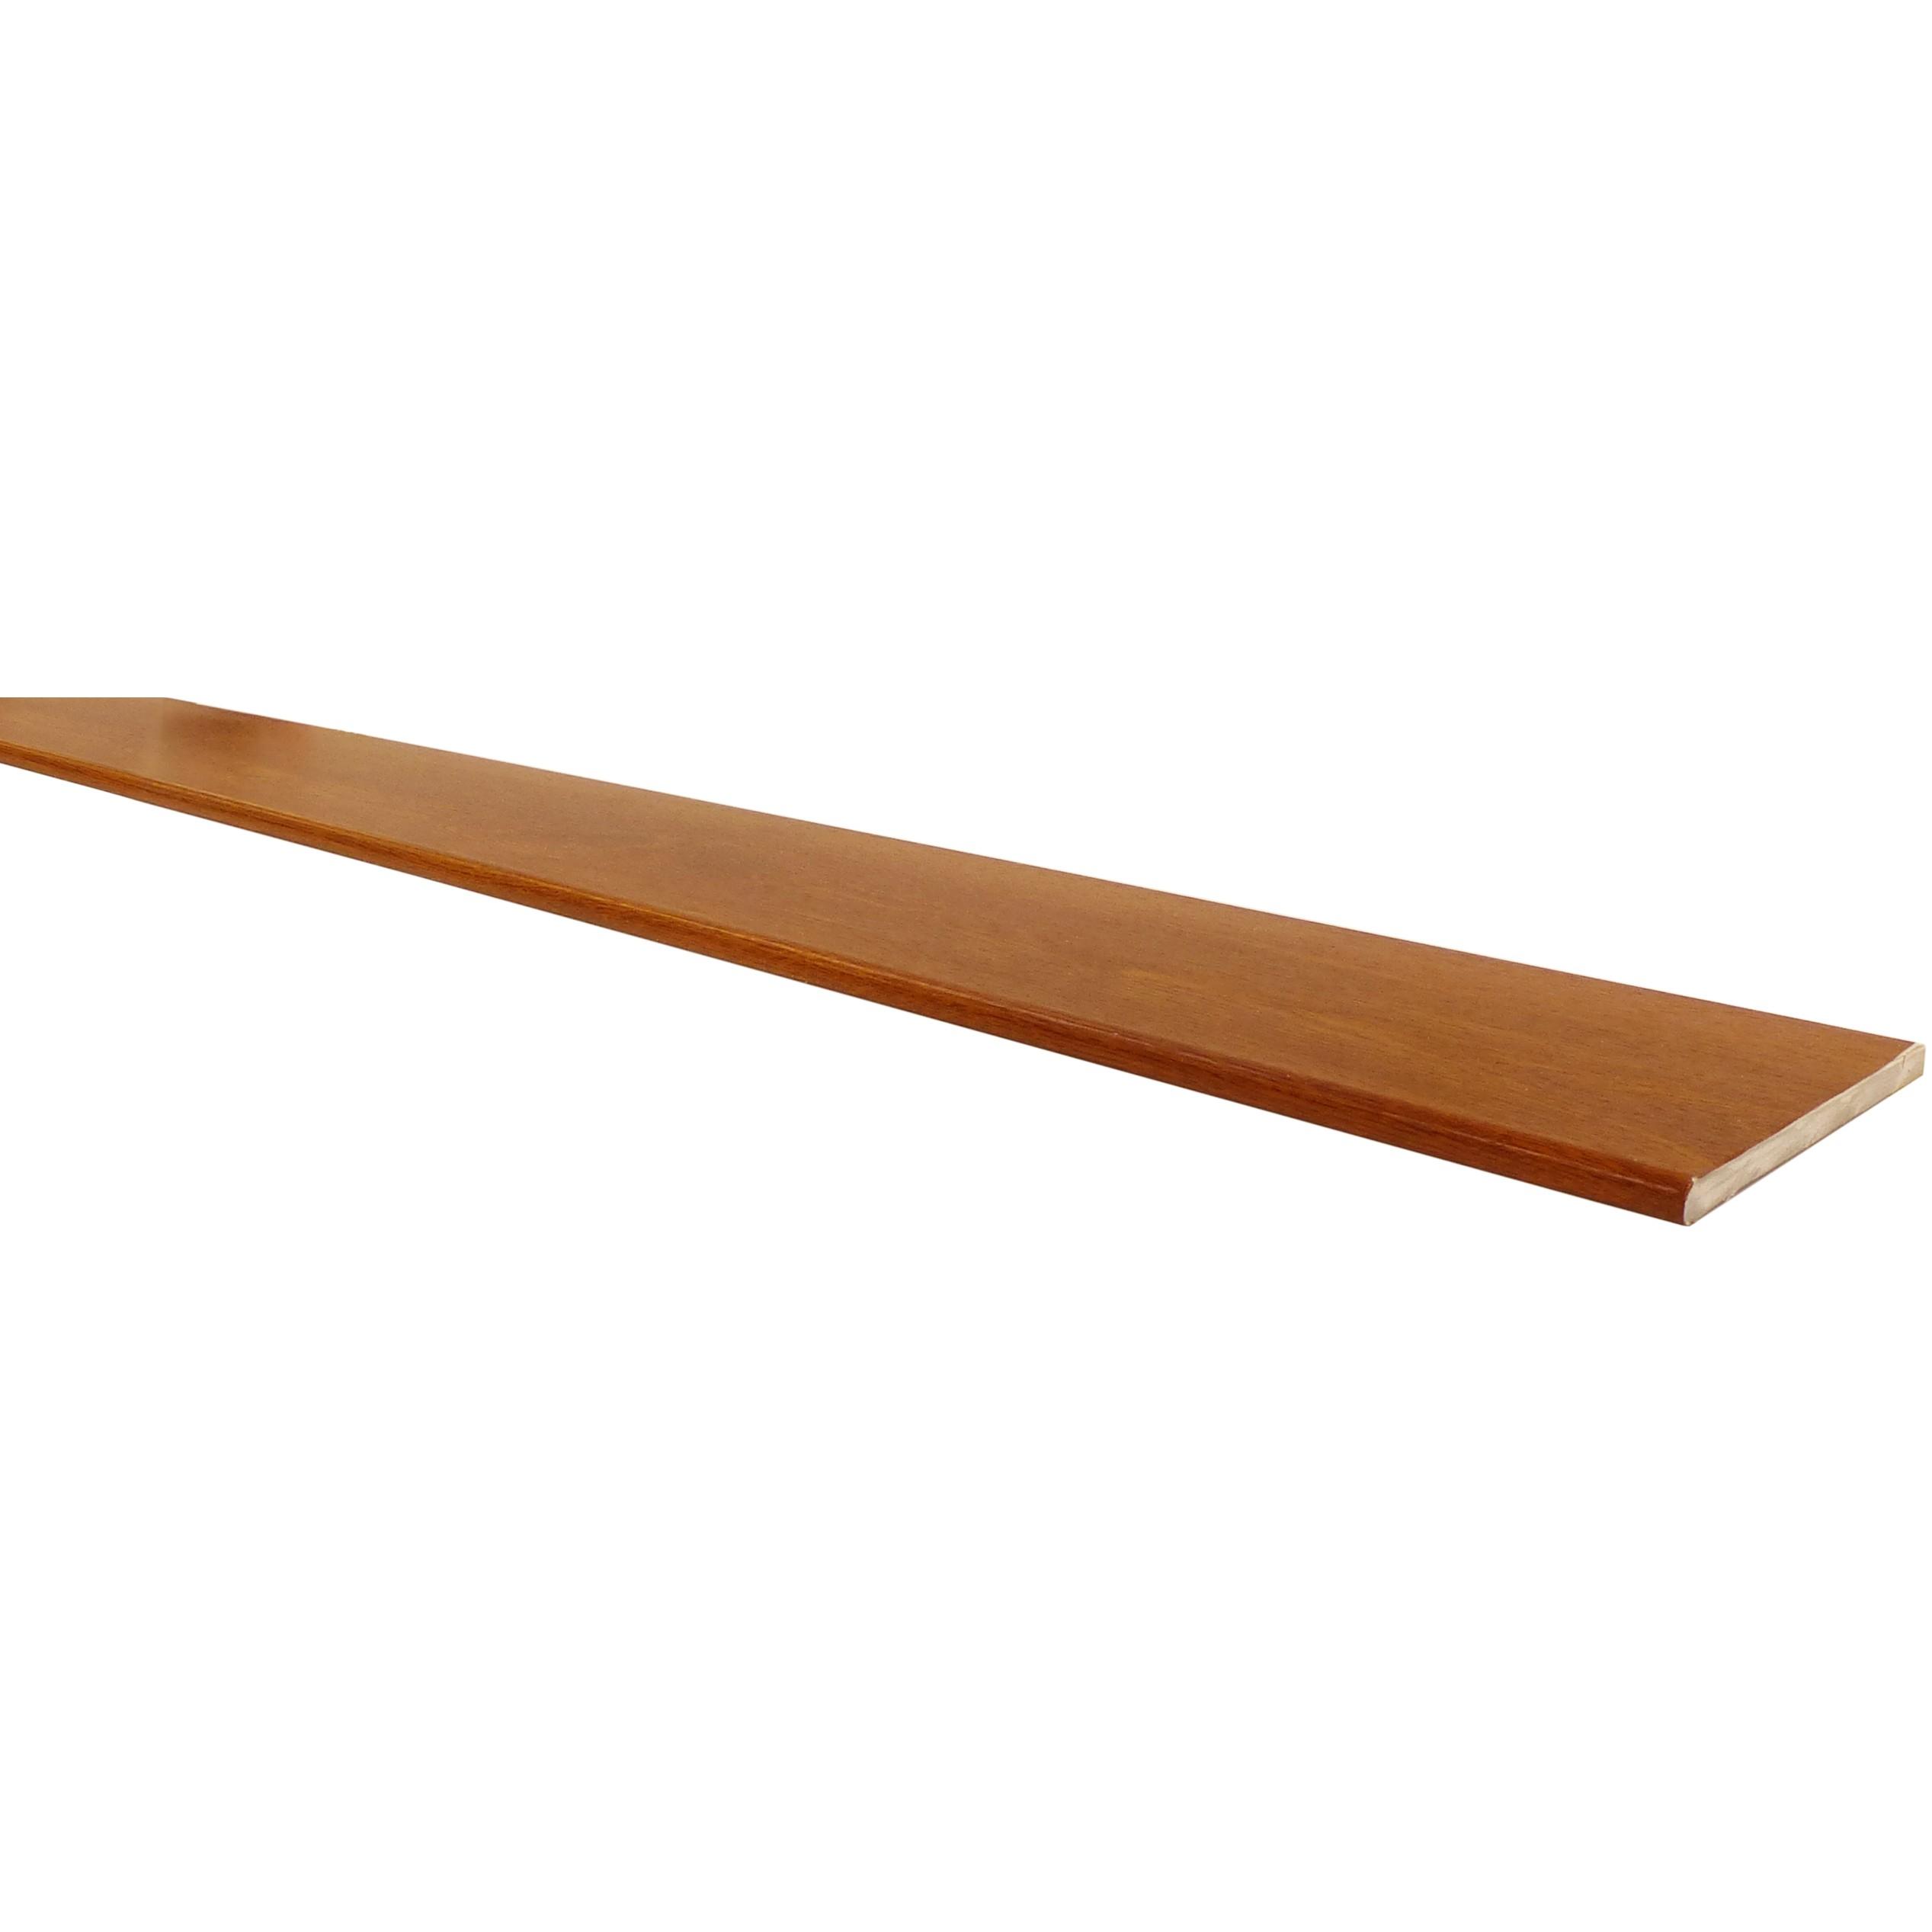 Freefoam 10mm Solid Soffit Board - Woodgrain Light Oak, 100mm, 5 metre